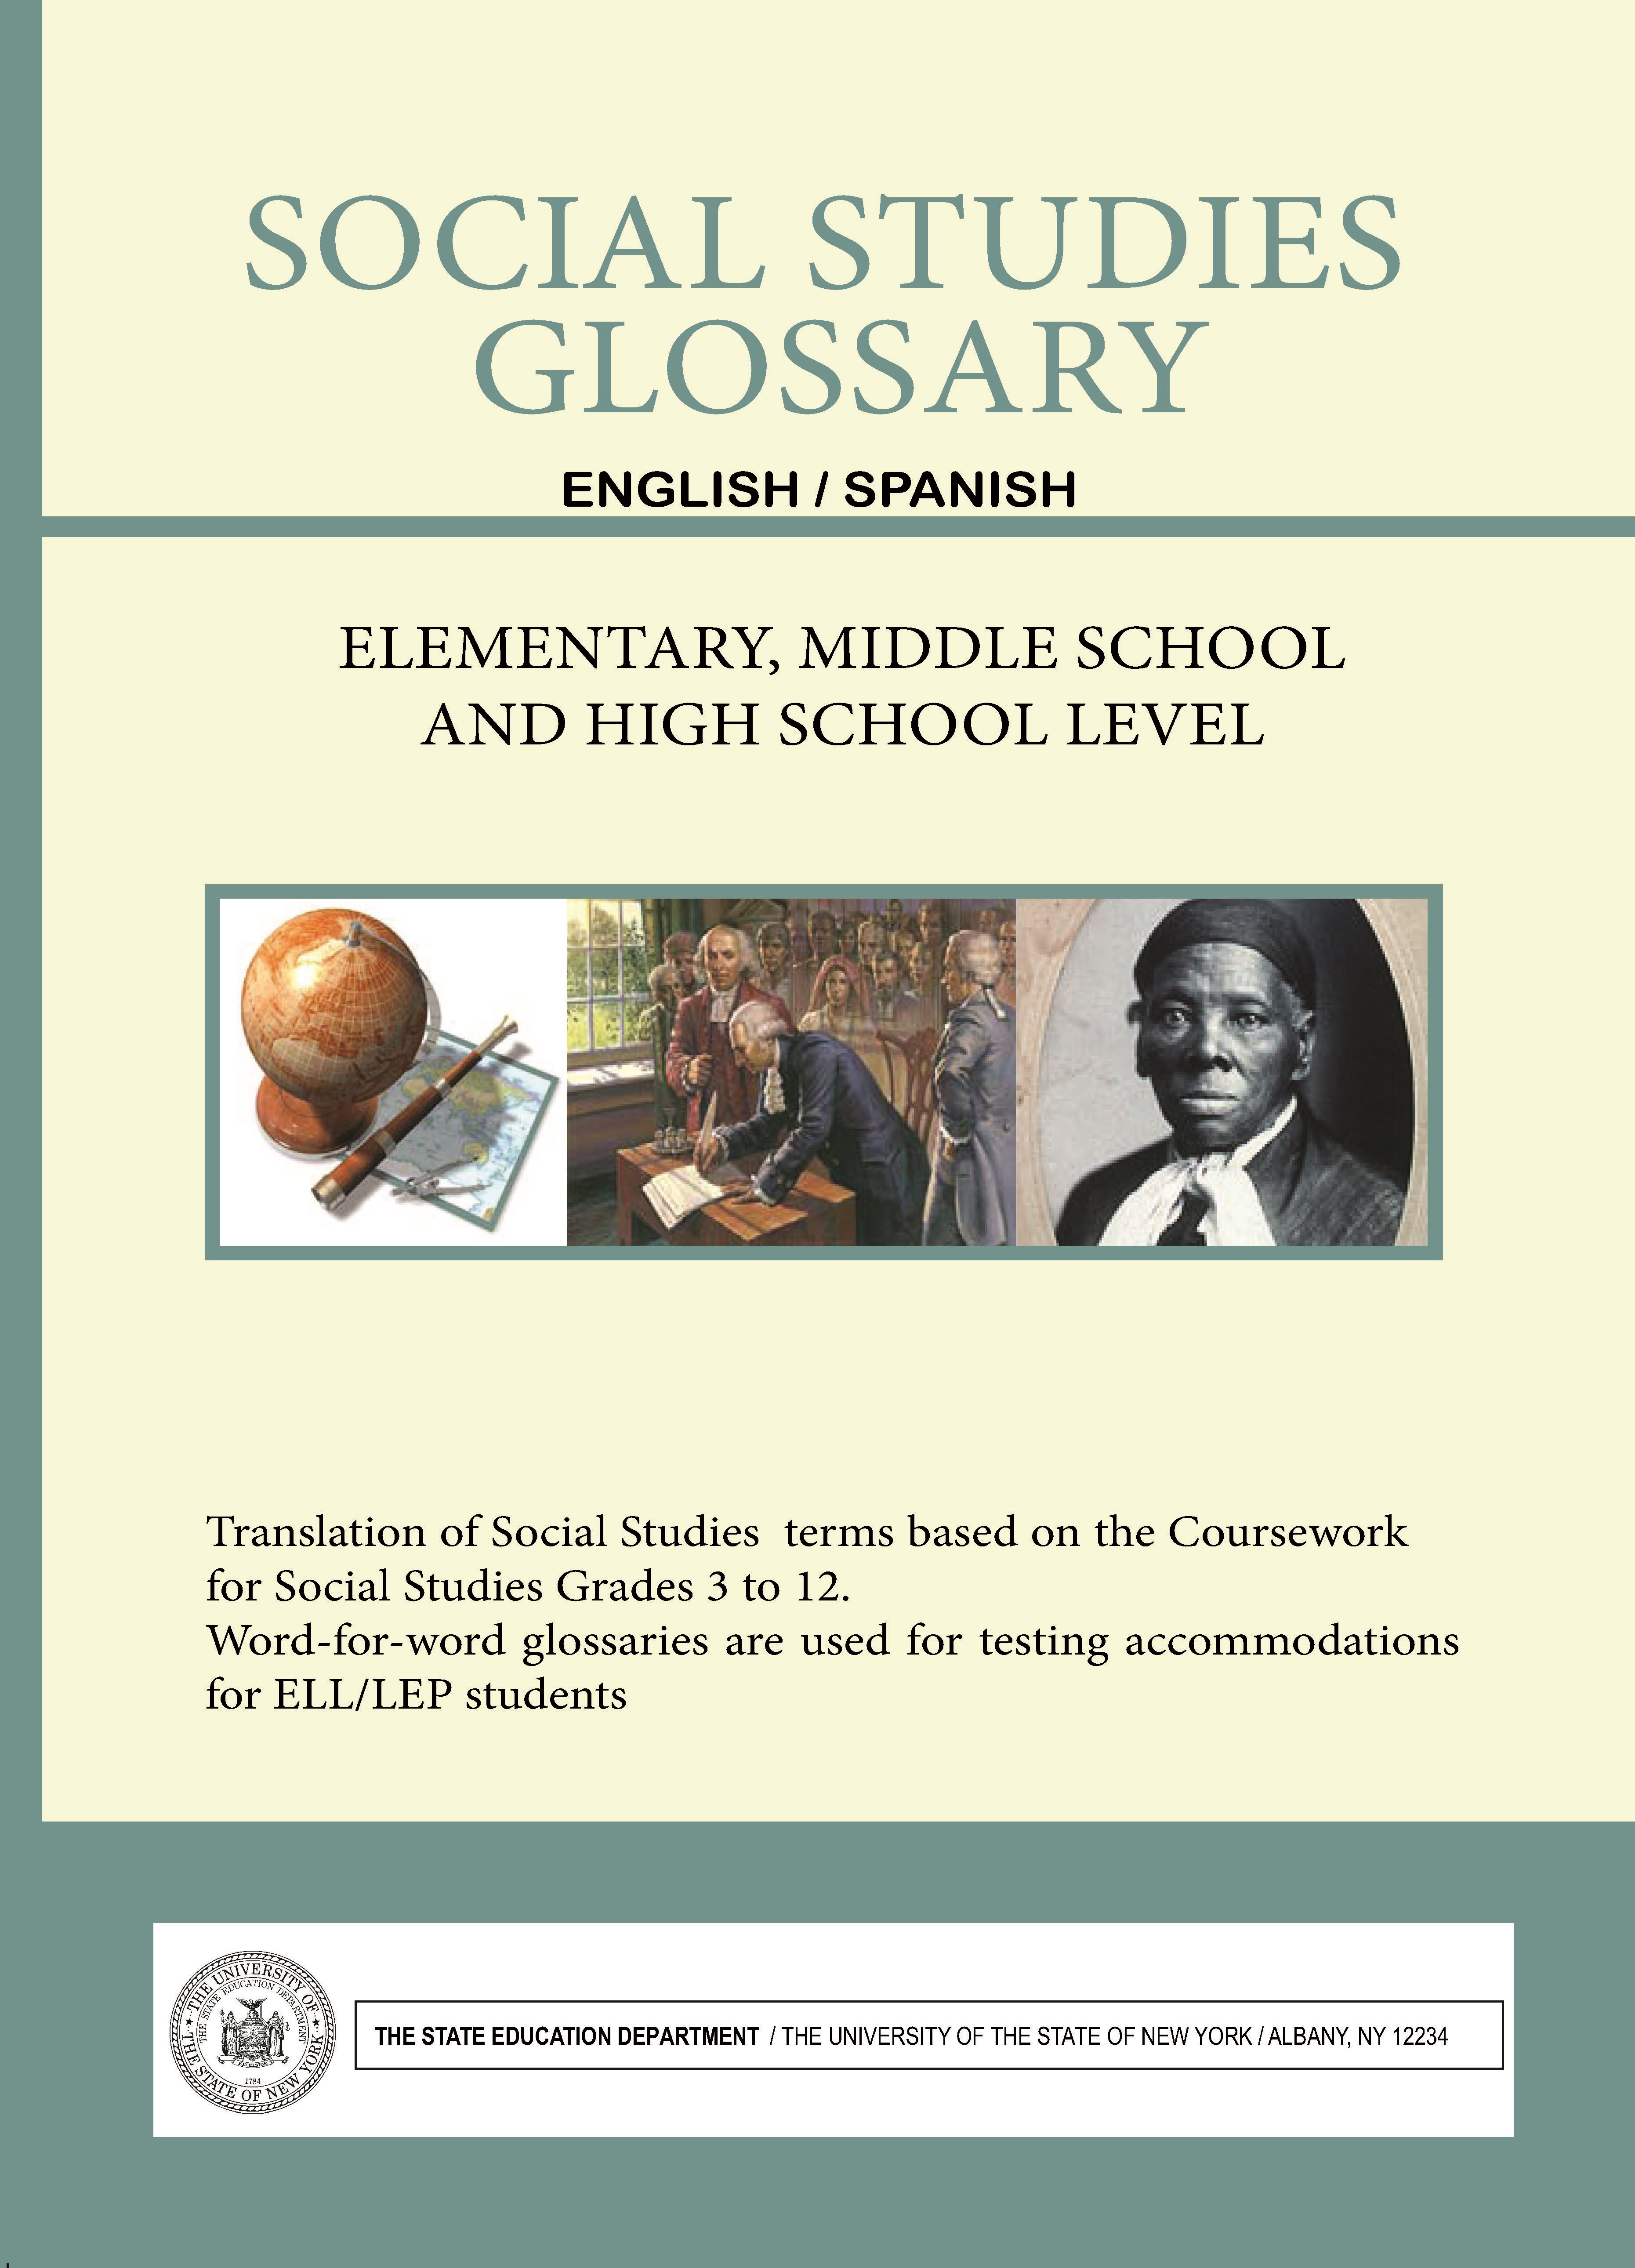 Social Studies Glossary  English/Spanish  Elementary, Middle School and High School Level